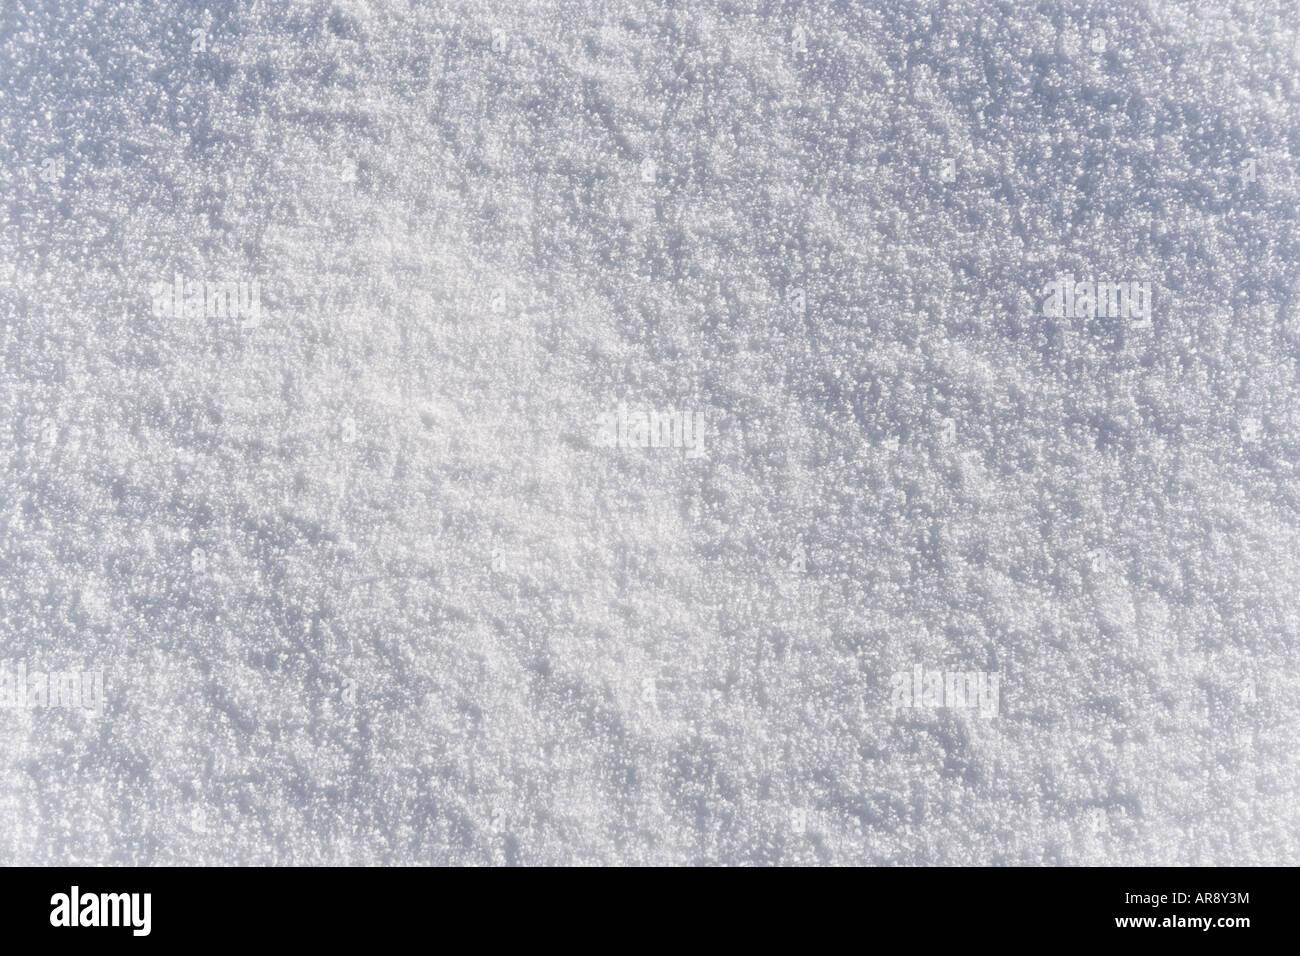 snow background - Stock Image